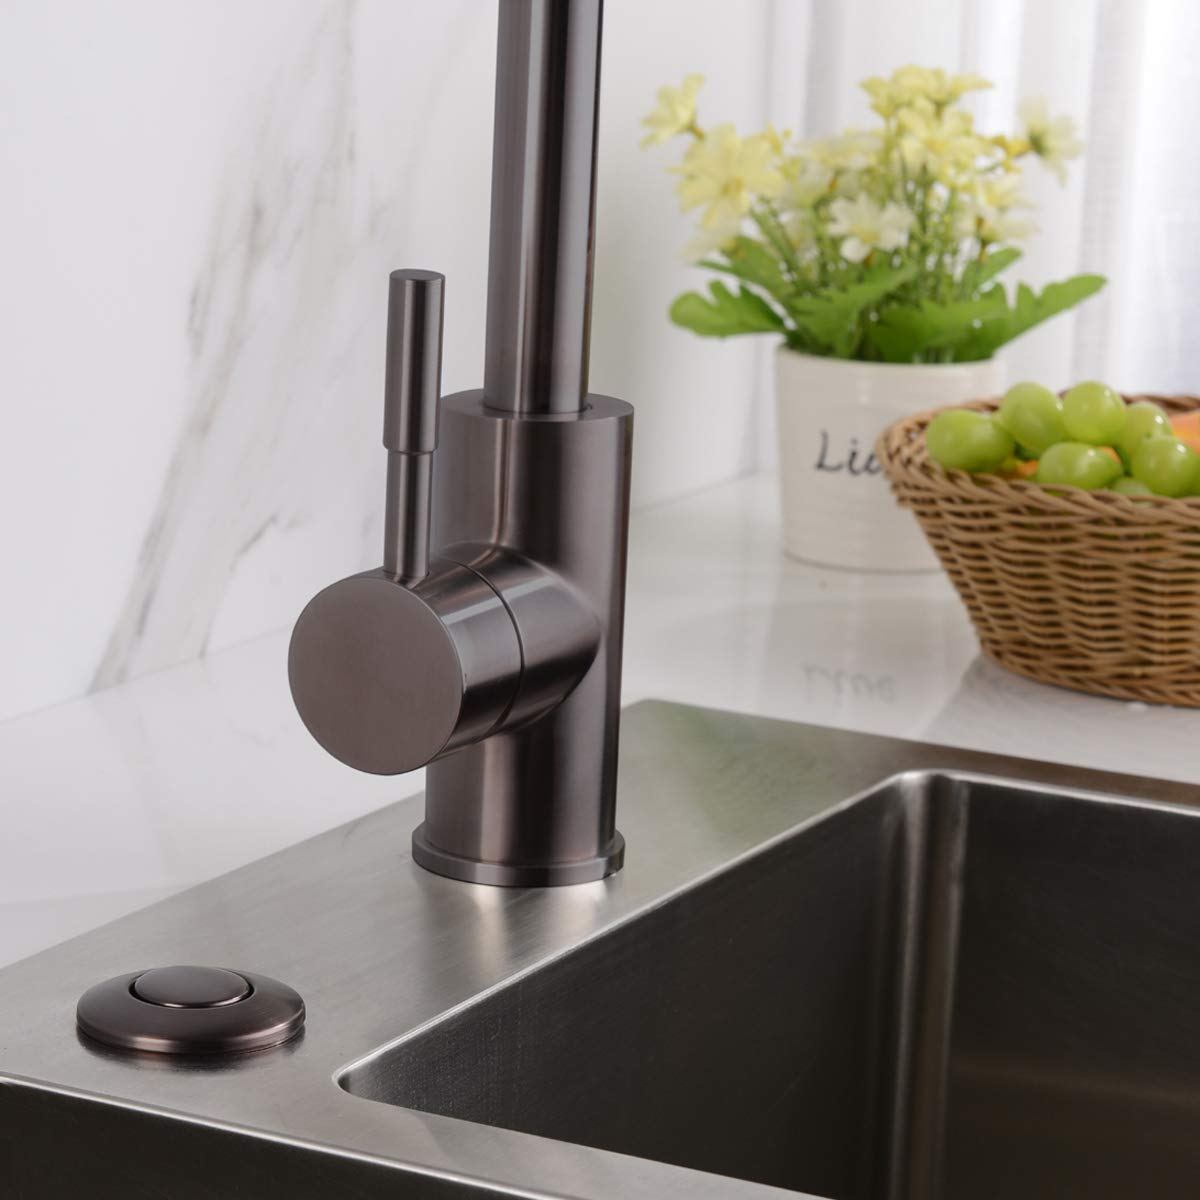 BESTILL Garbage Disposal Sink Top Dual Outlet Air Switch Kit,Oil Rubbed Bronze/ORB by BESTILL (Image #2)